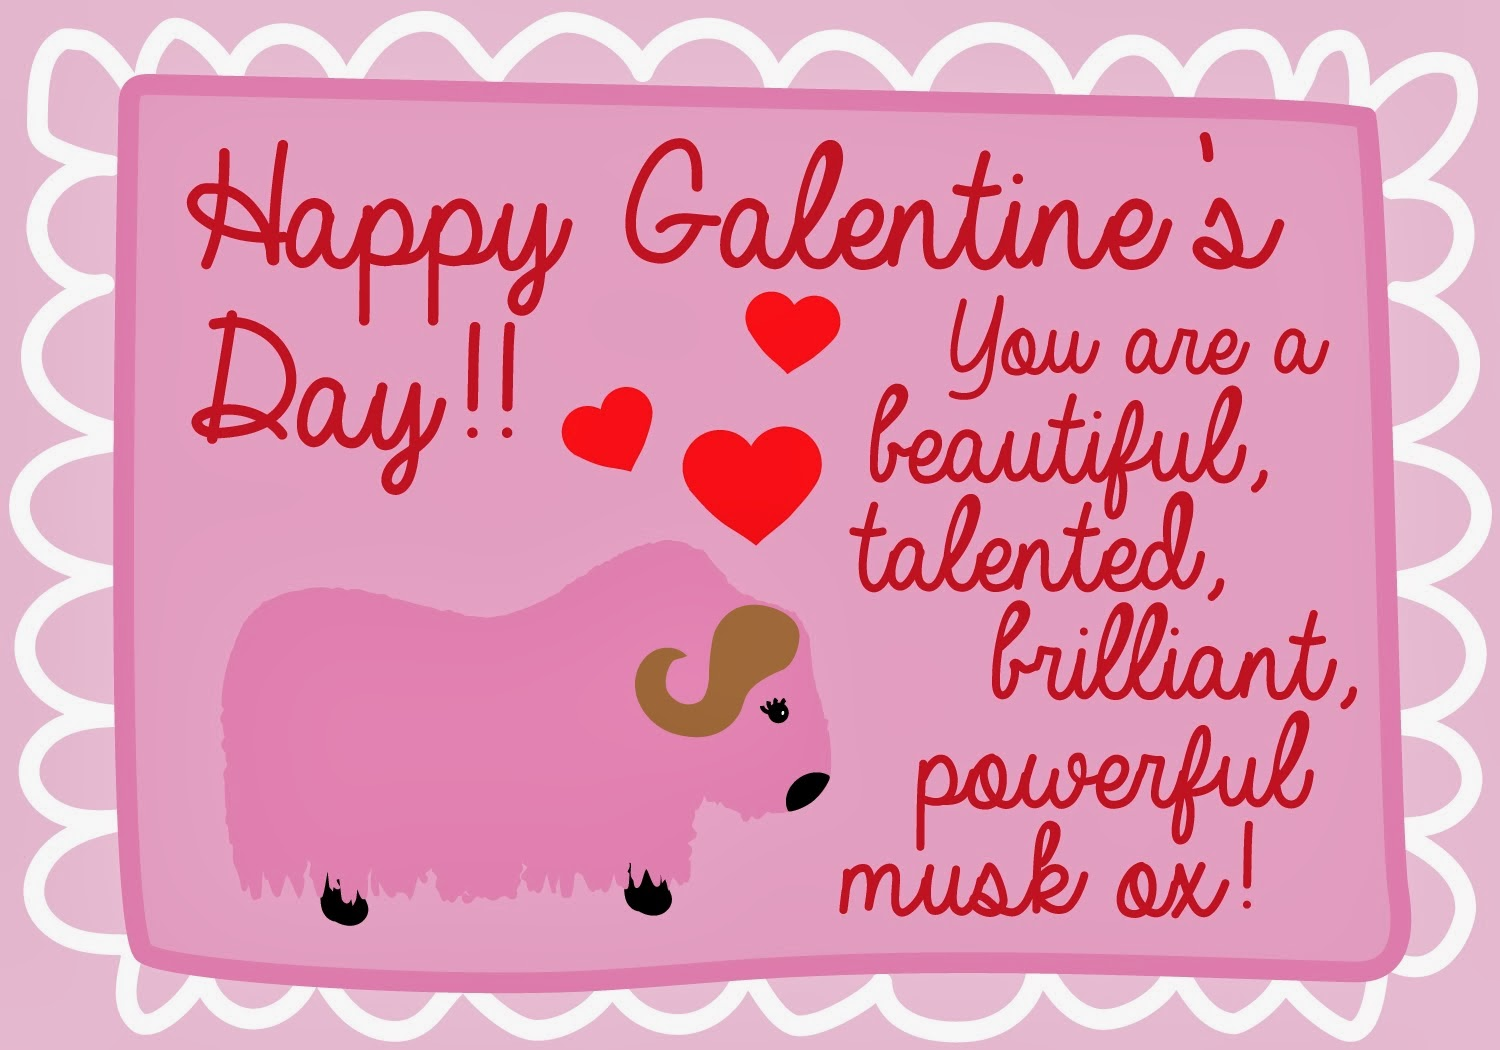 galentine's day - photo #47